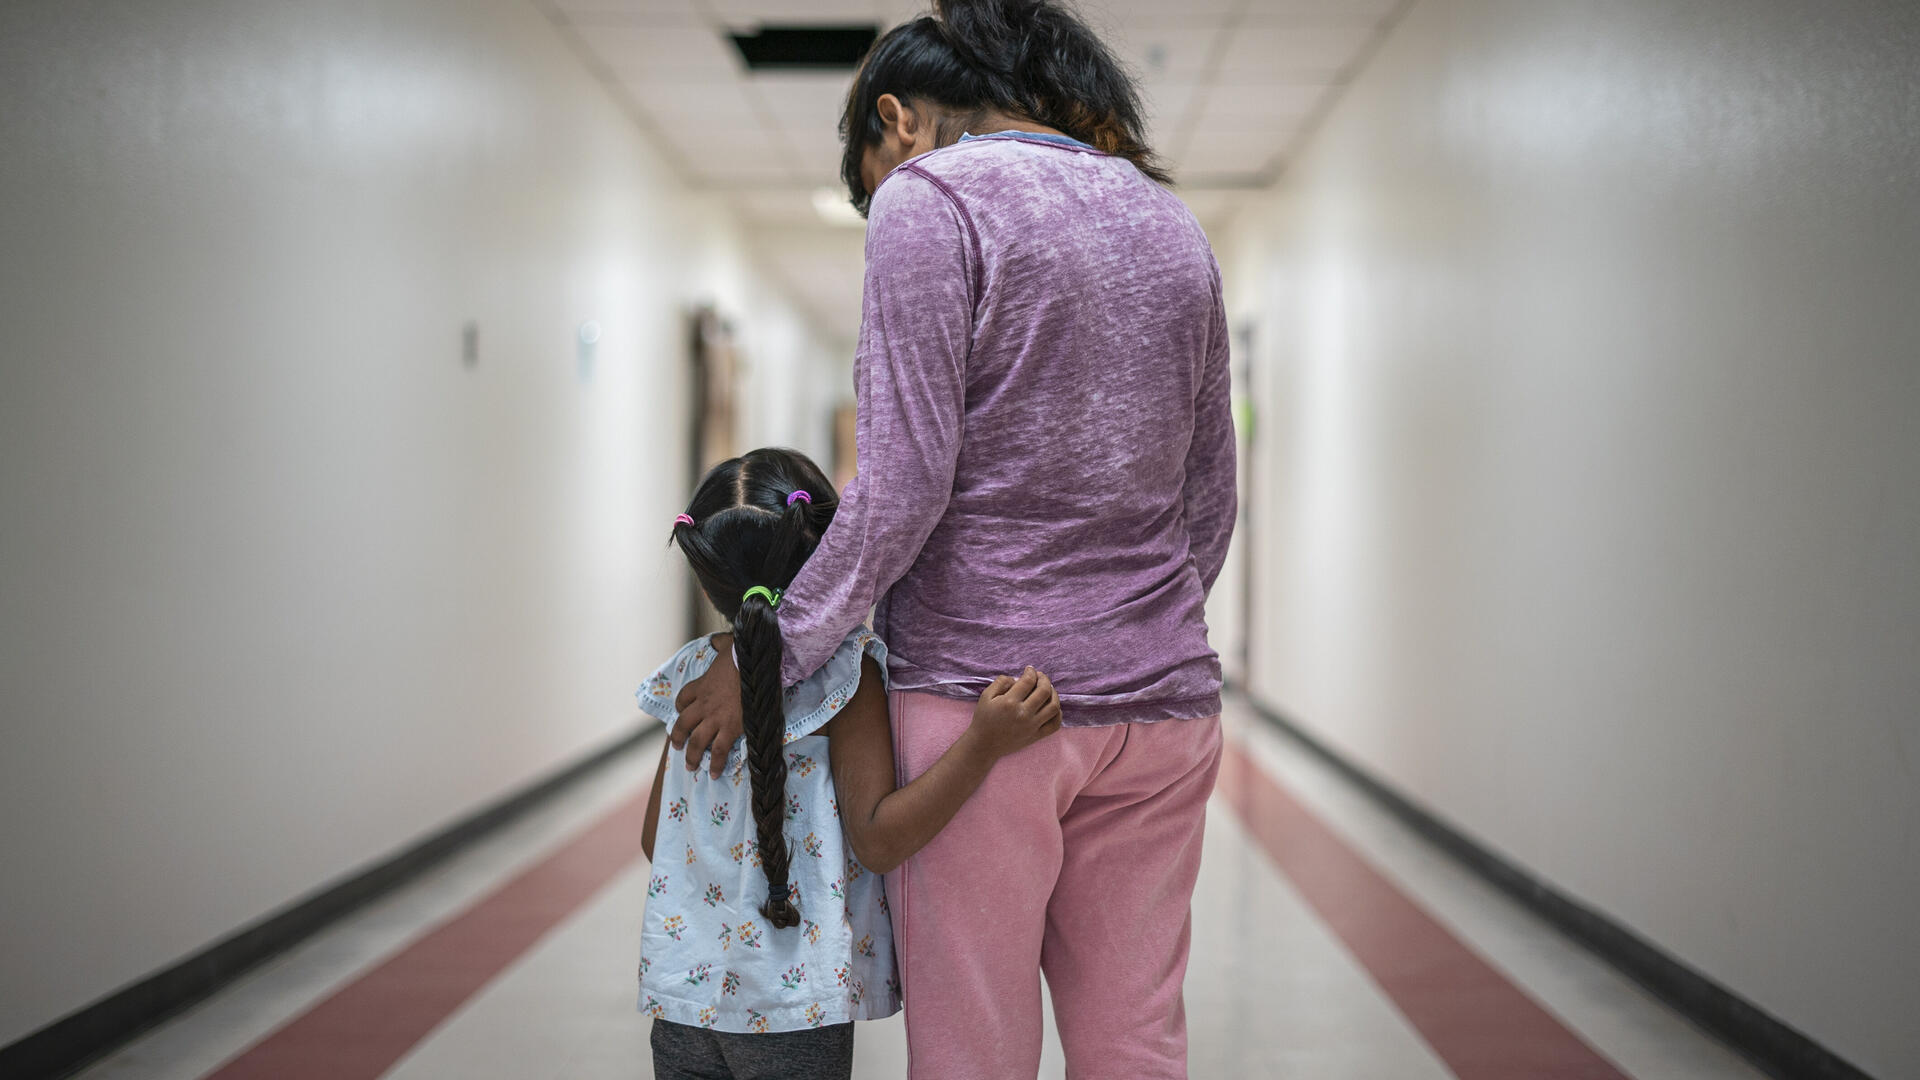 A Mexican mother wearing pink pants and a purple shirt stands with her arms around her young daughter, who has a long braid, in a hallway. They are asylum seekers in an IRC welcome center.